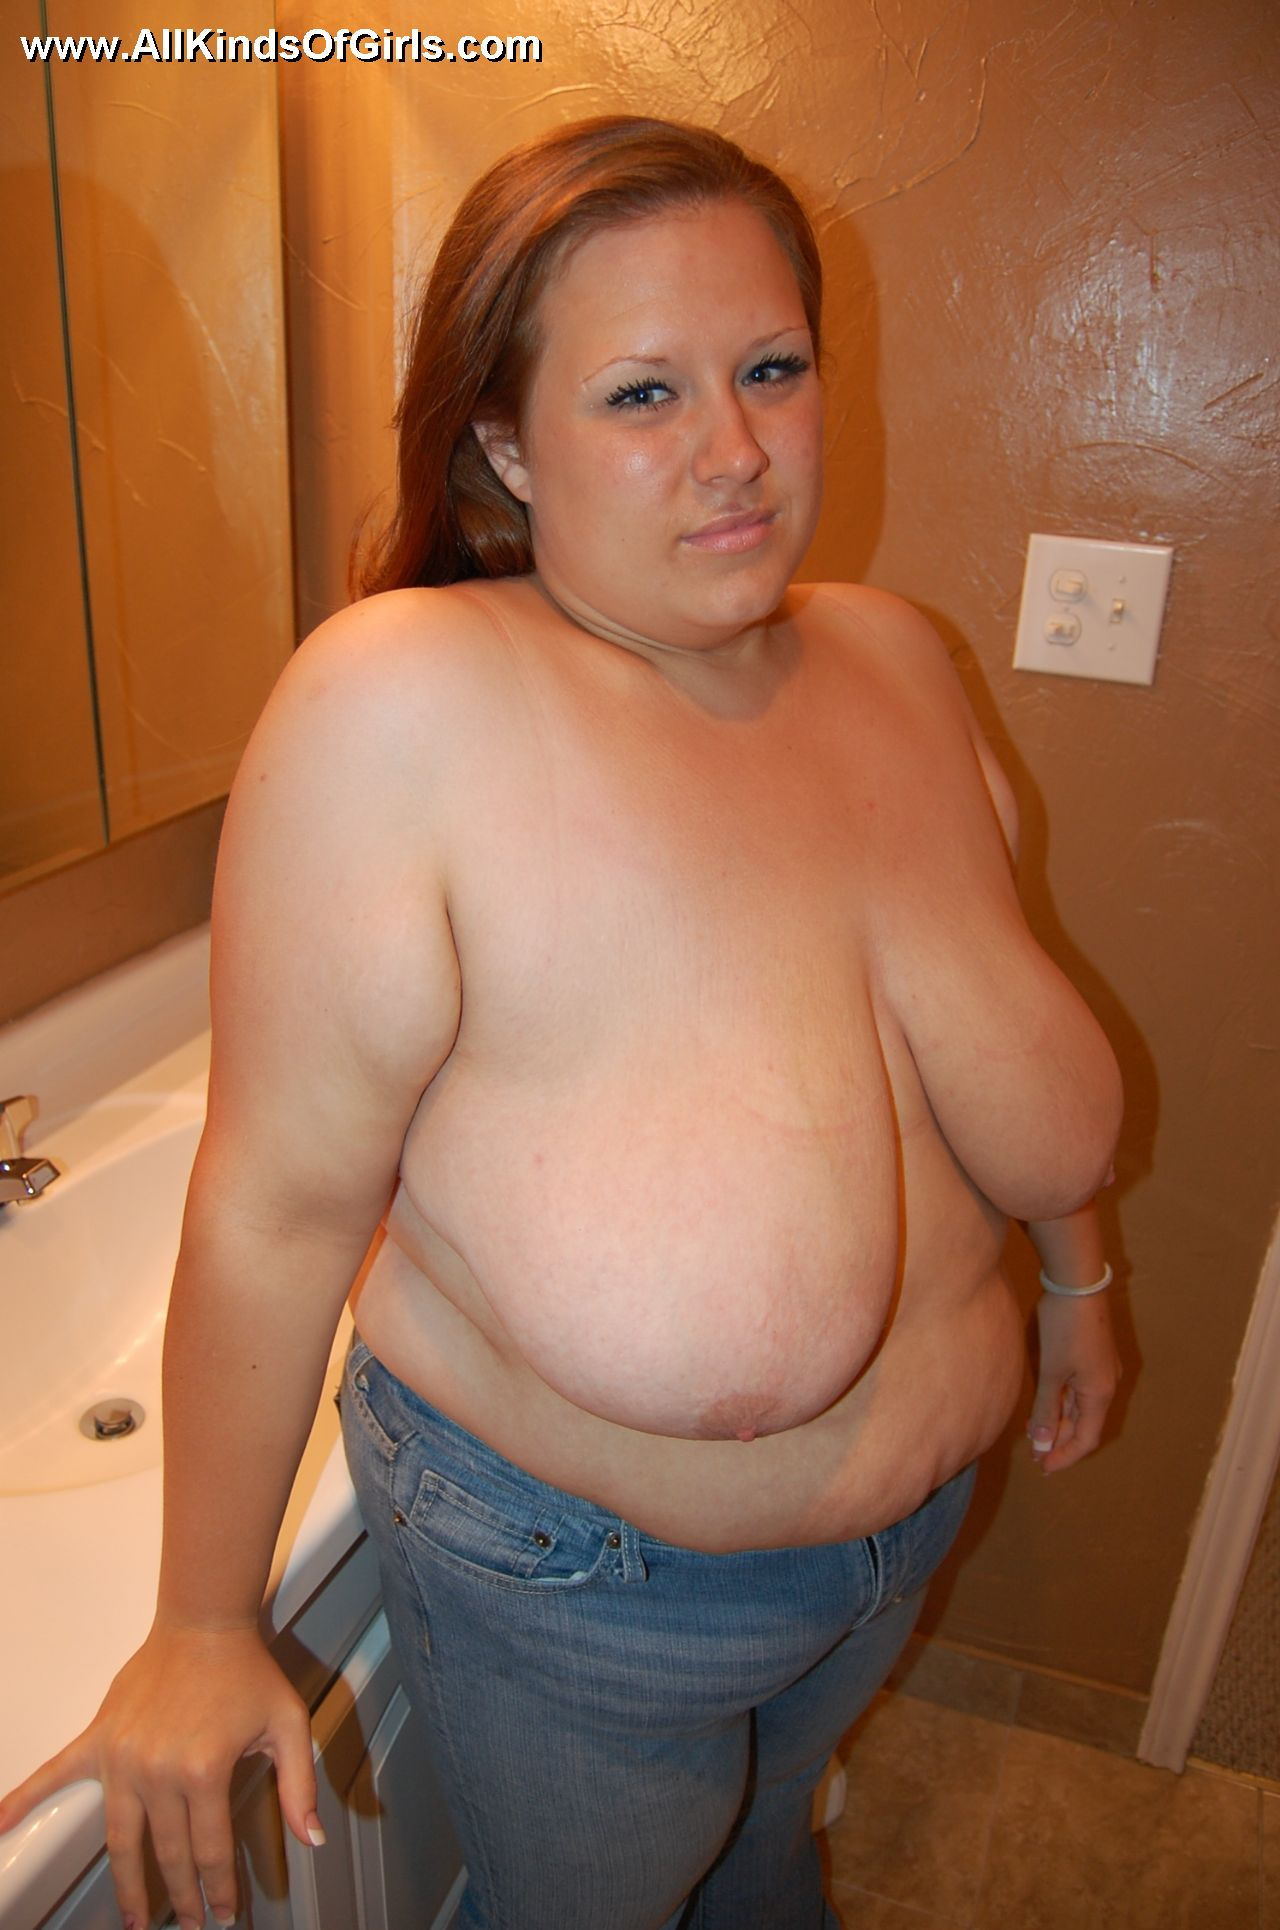 Does bbw large lusty girl with dsl opinion you